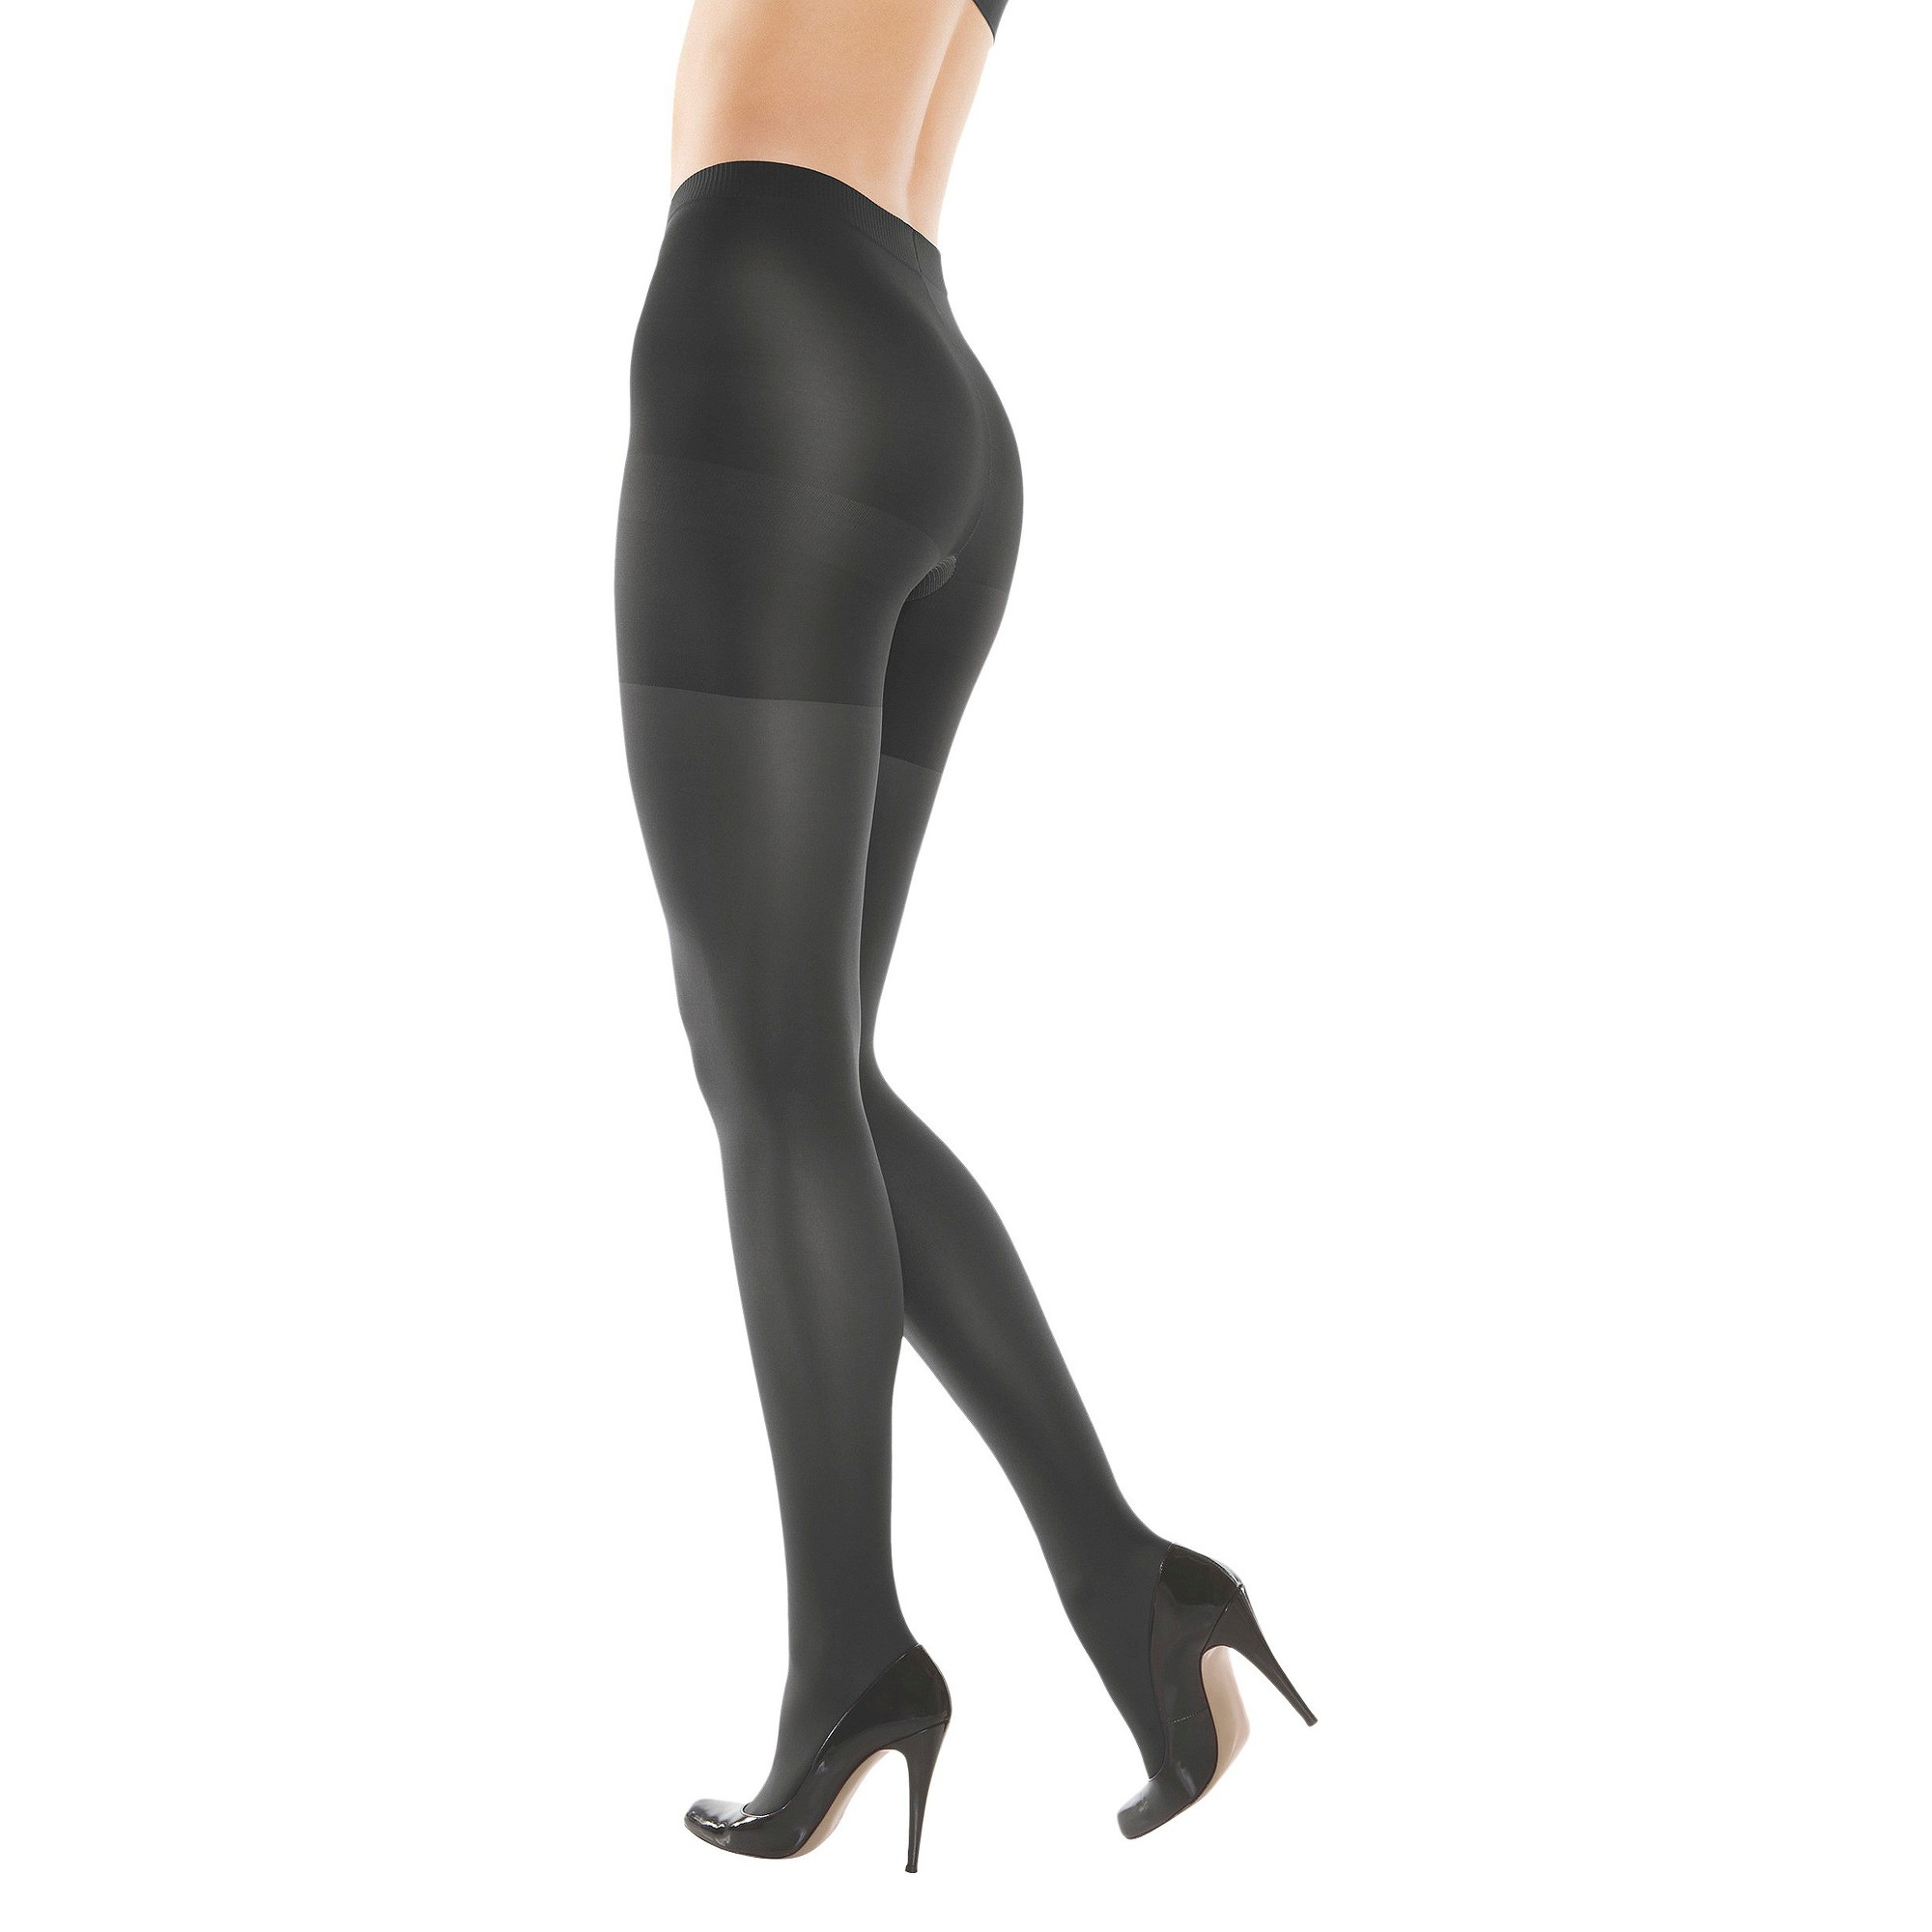 Assets By Spanx Women's Original Shaping Tights - Black 1